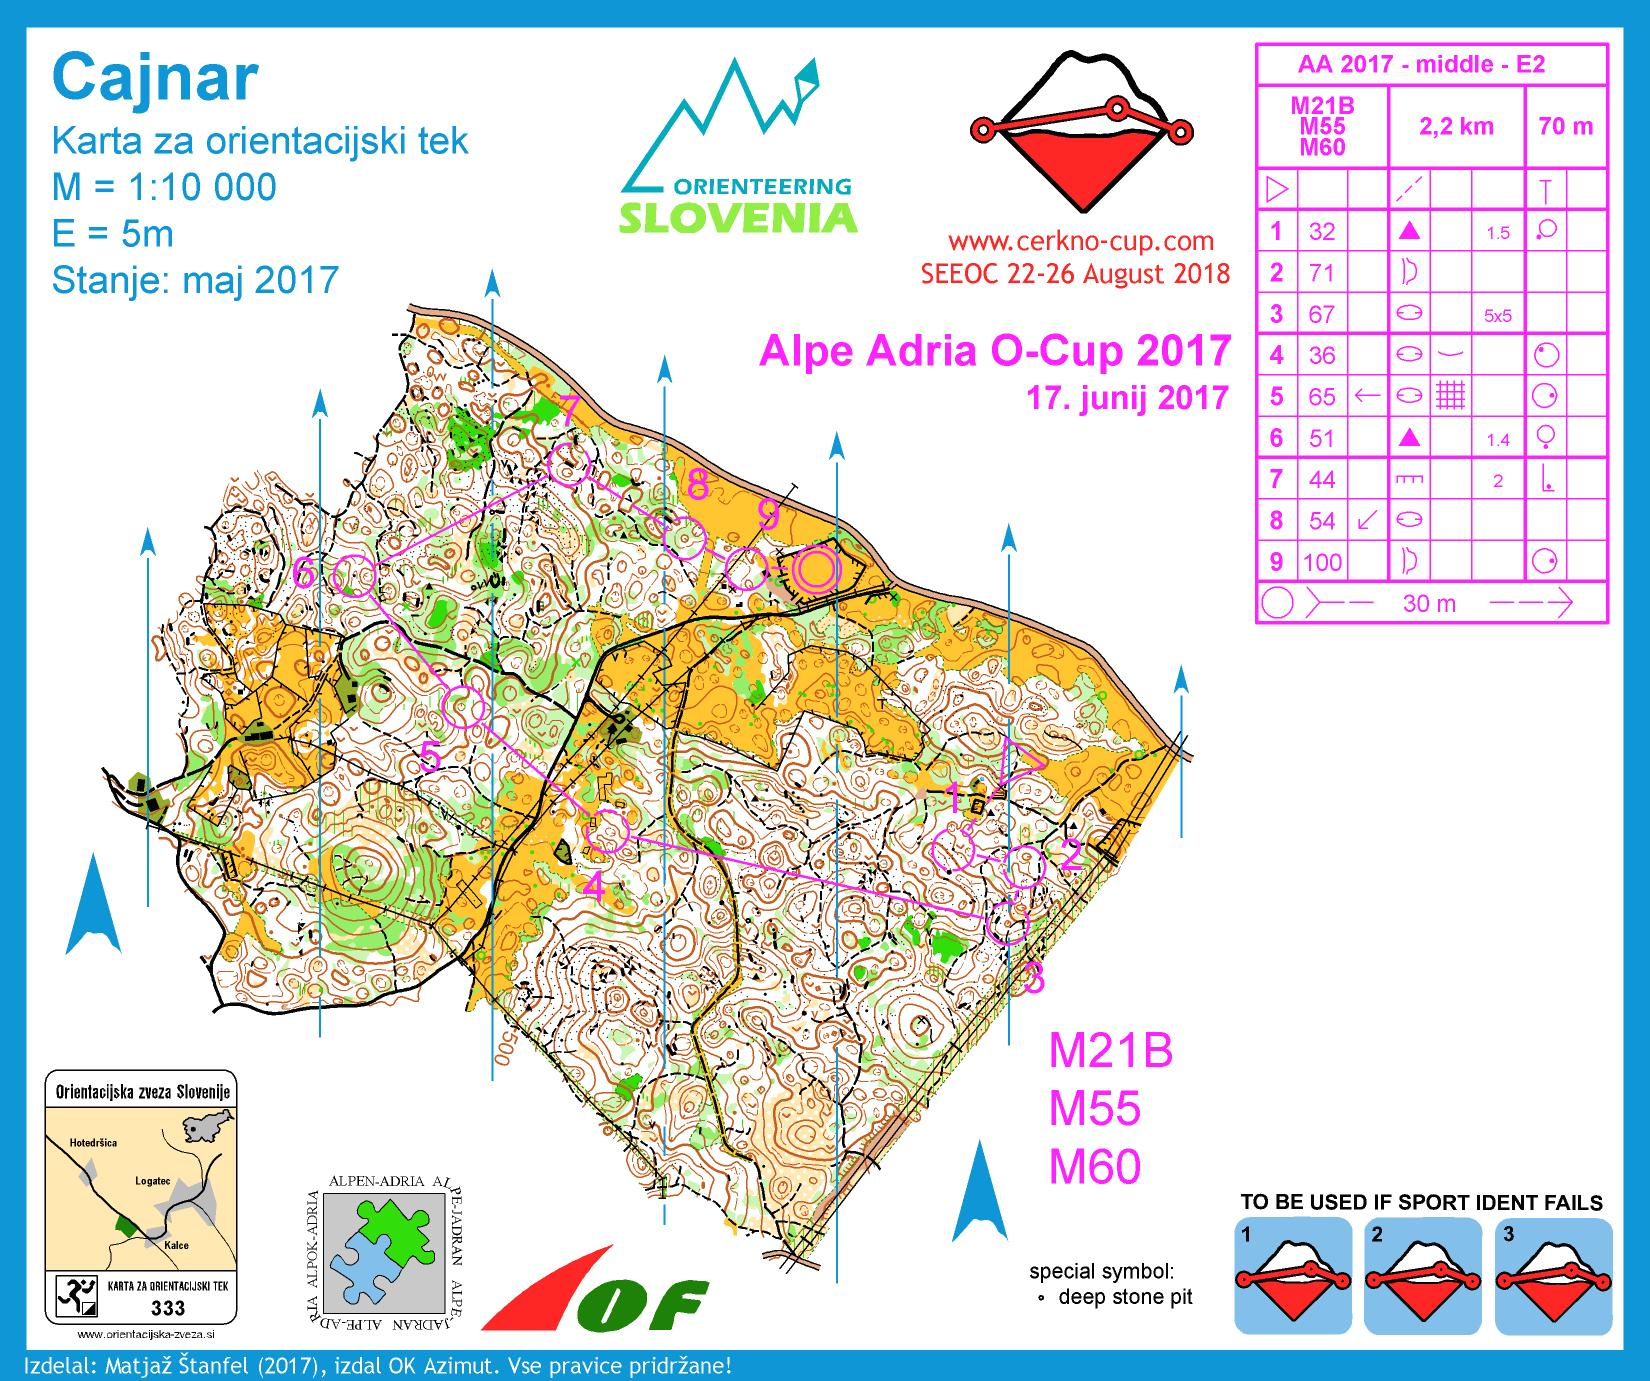 Alpe Adria Orienteering Cup - M21B, M55, M60 - middle distance (17. 06. 2017)